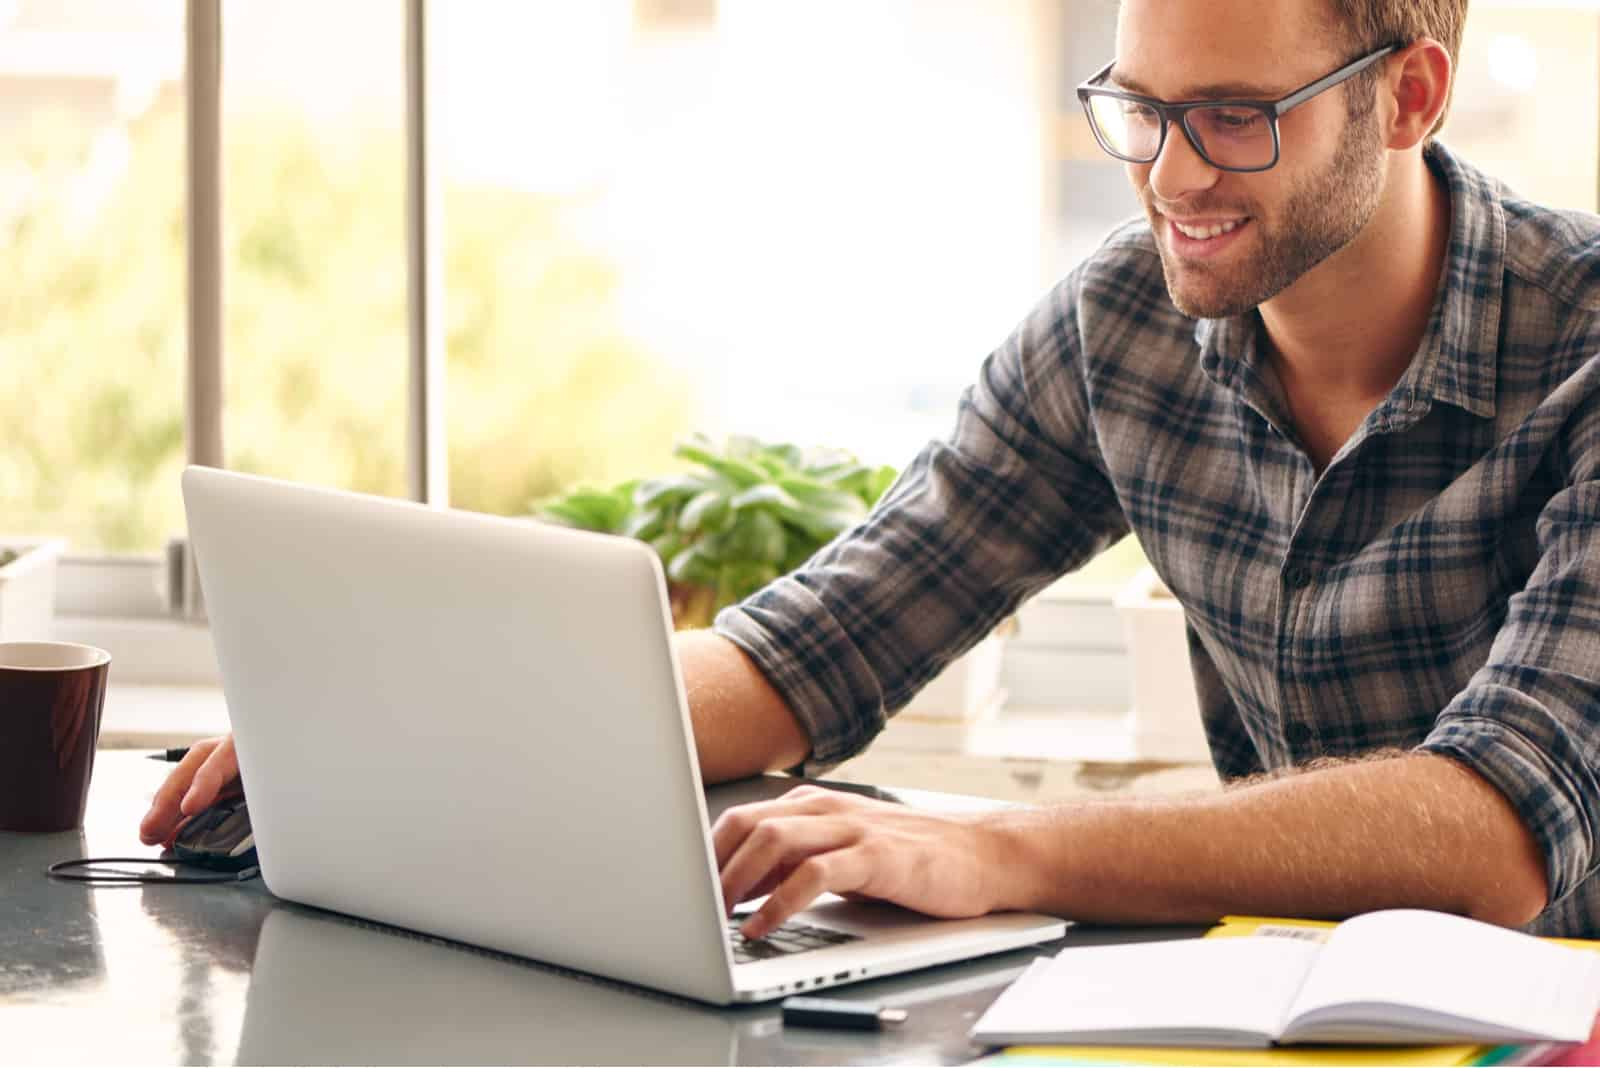 a smiled man sitting behind a laptop